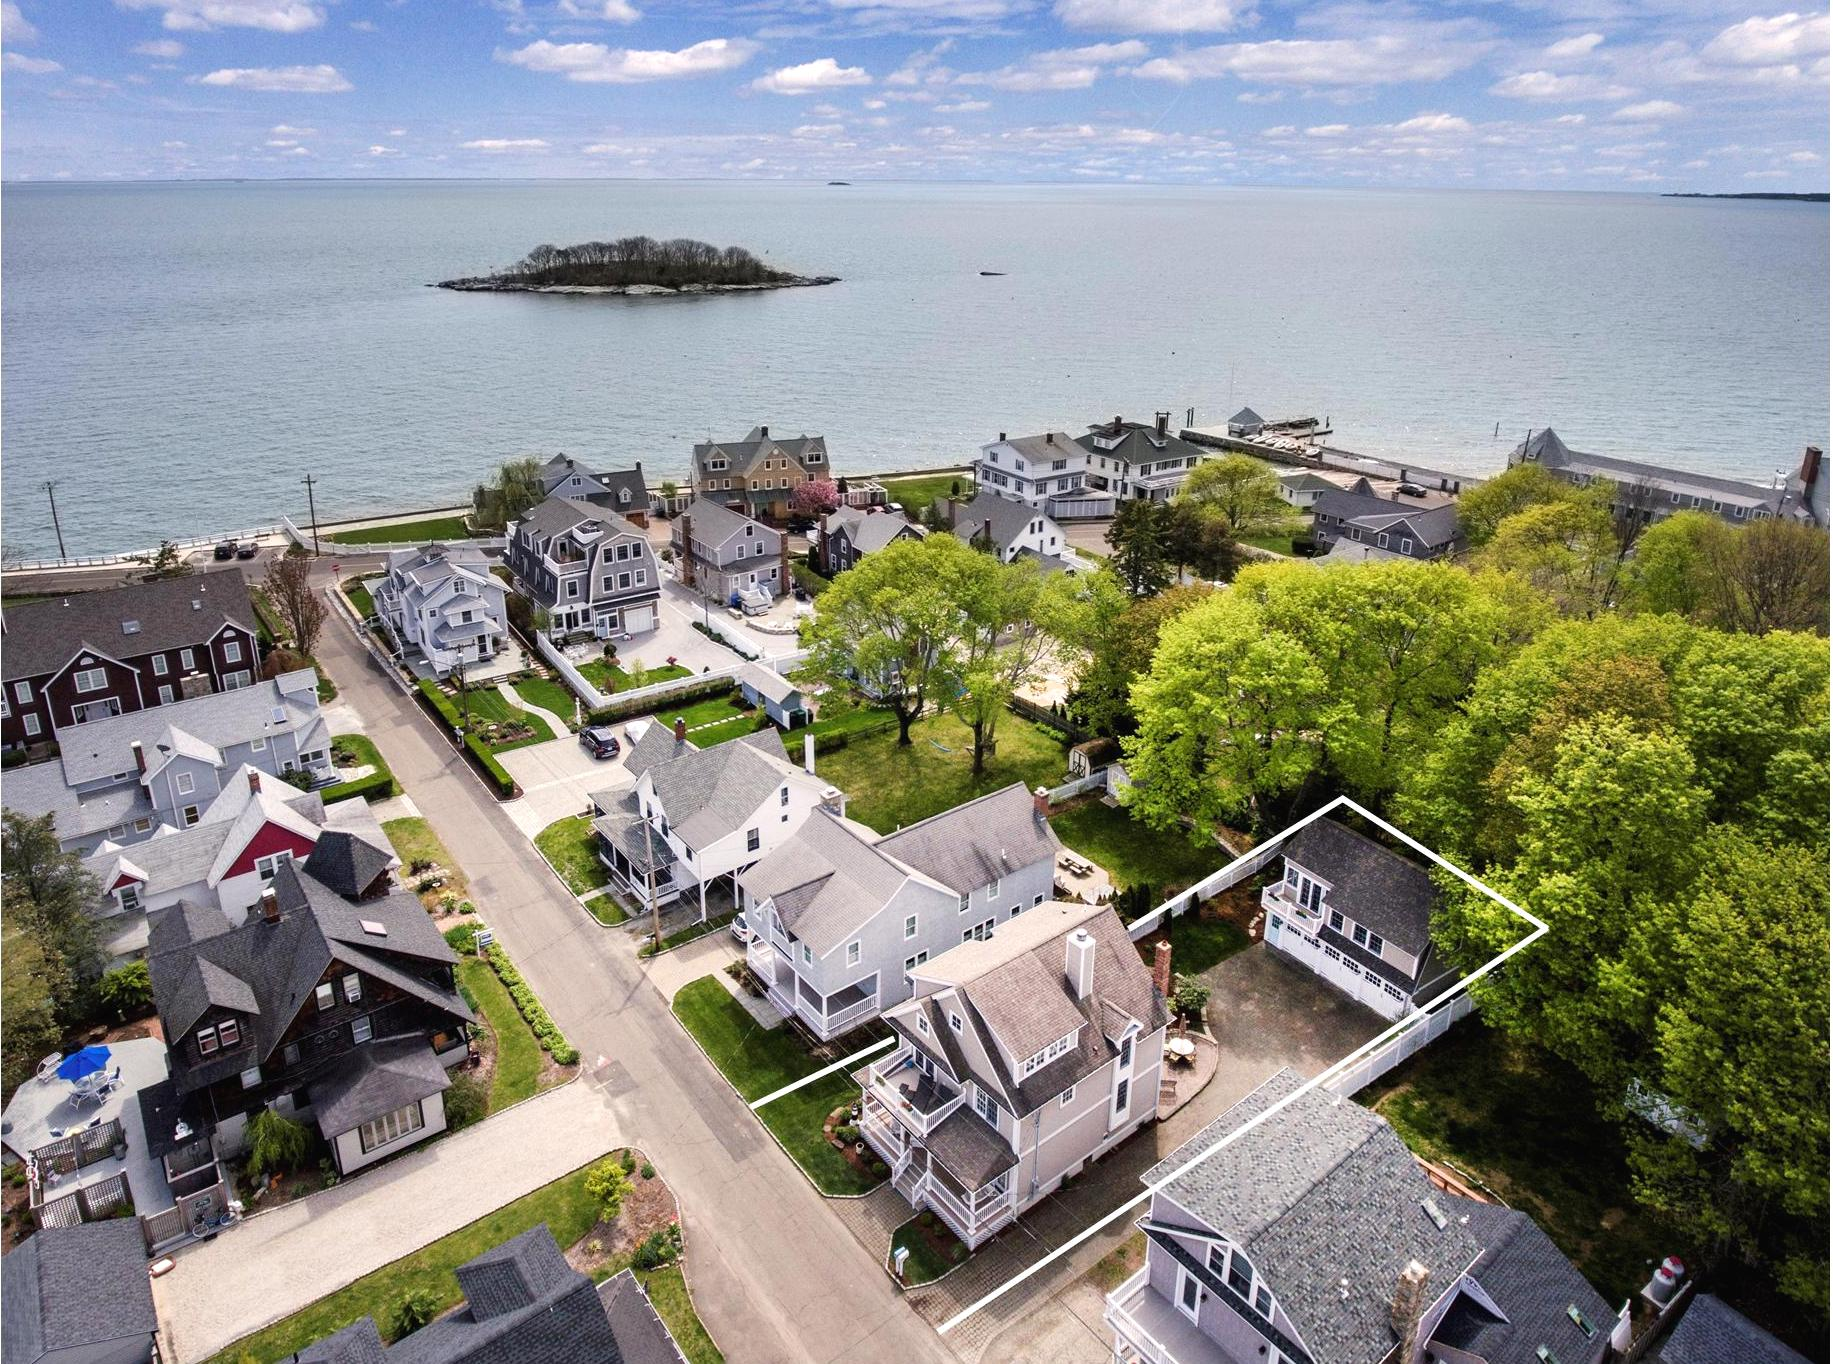 Single Family Home for Sale at Just steps to Long Island Sound with beautiful water views! 15 Tuxis Rd Madison, Connecticut, 06443 United States